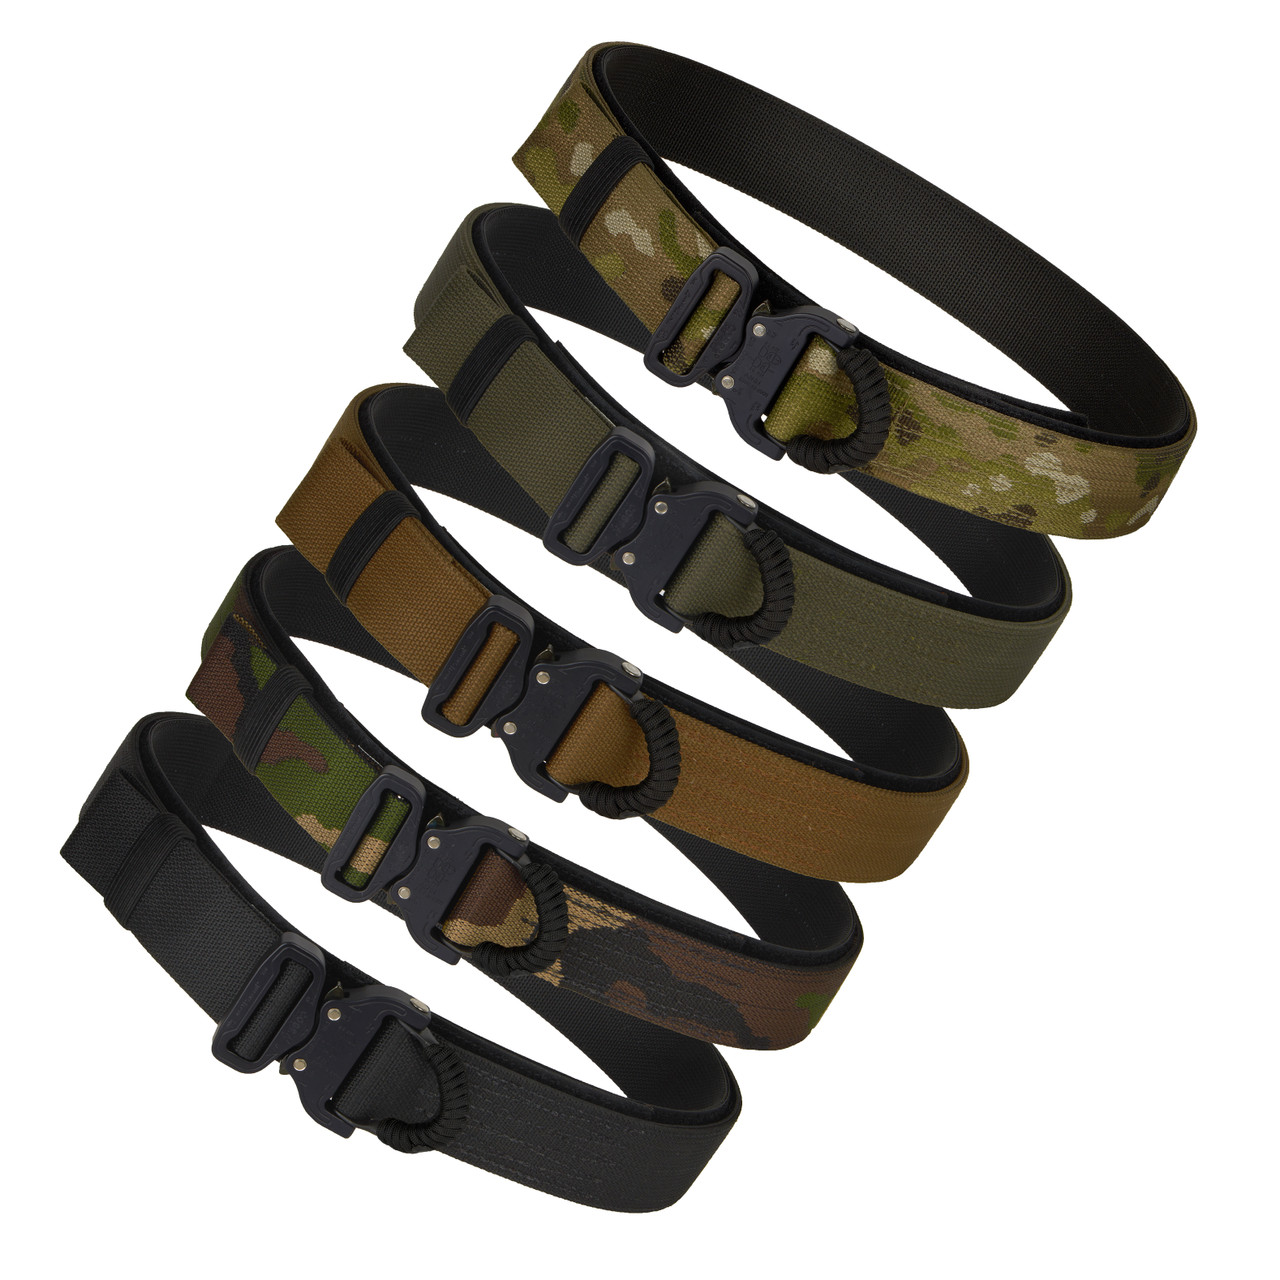 Multicam, ranger green, coyote, woodland and black tactical belt